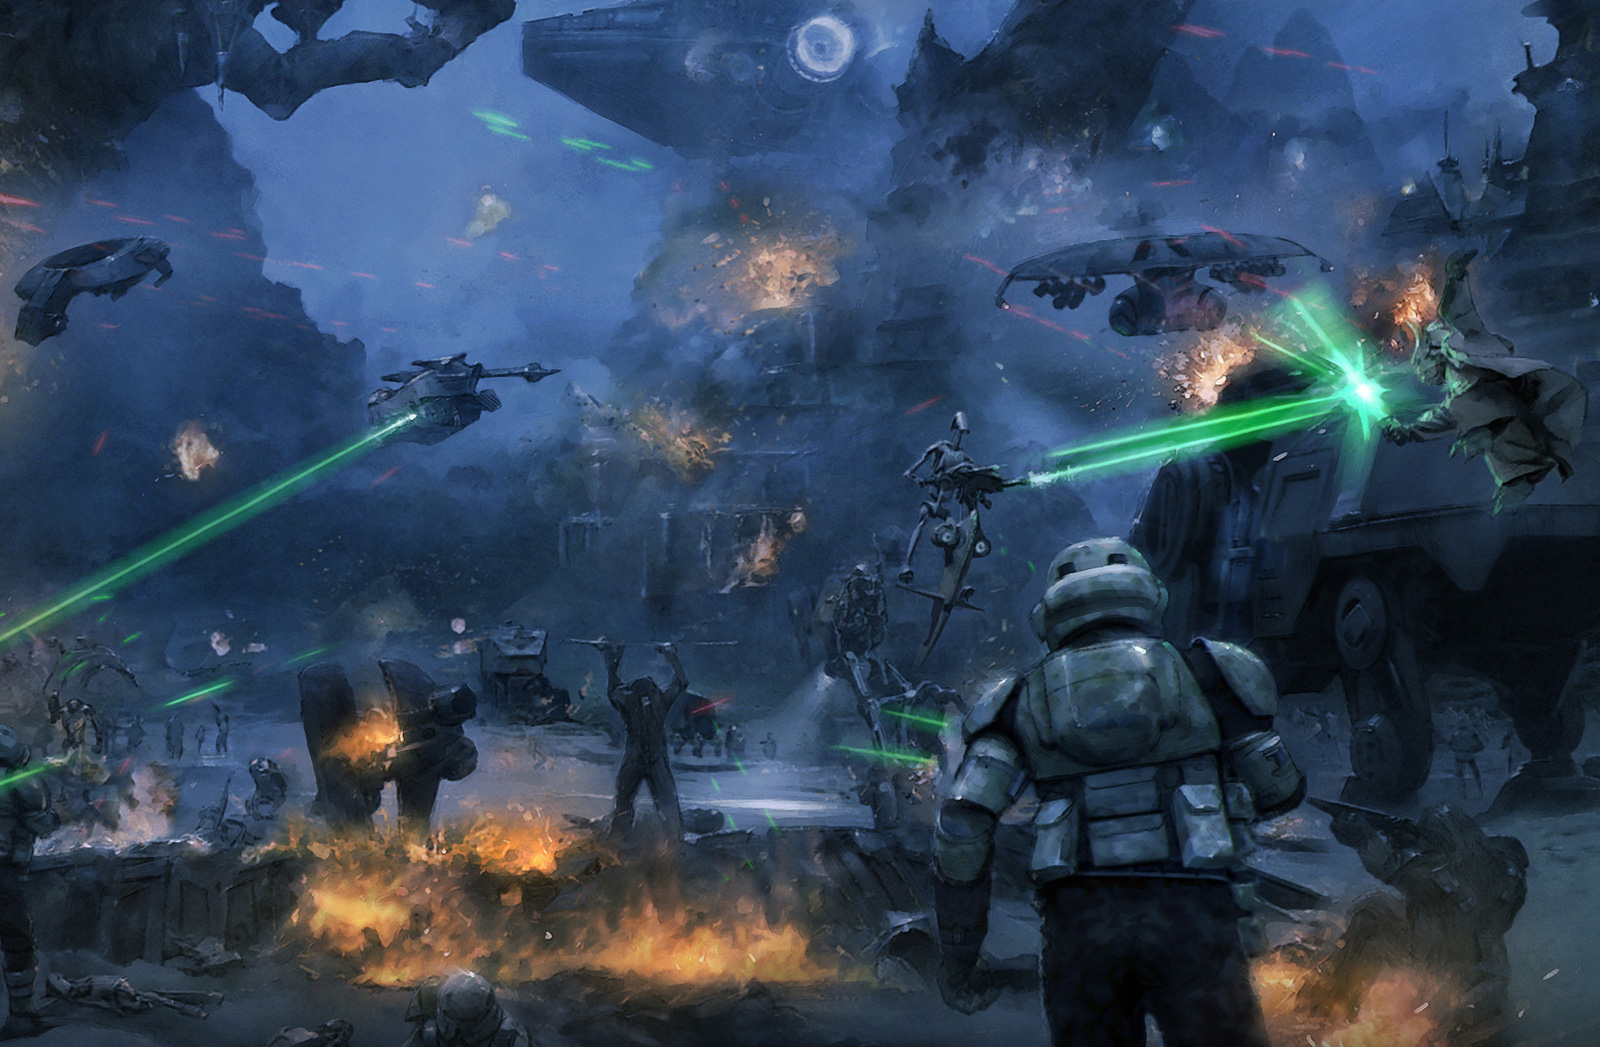 Battle of Kashyyyk | Wookieepedia | FANDOM powered by Wikia